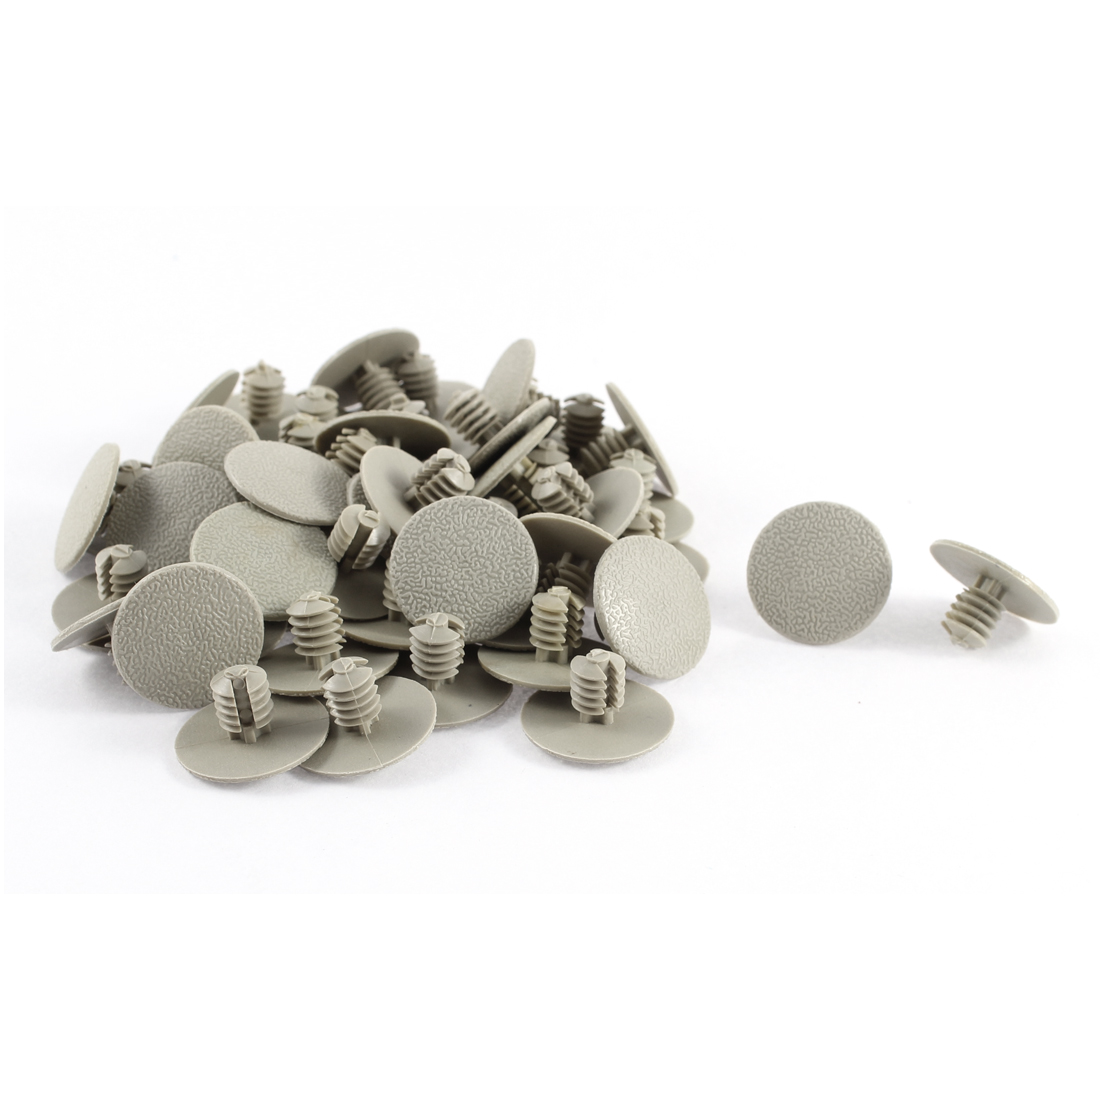 50 Pcs Gray Plastic Rivet Trim Fastener Retainer Clips 7mm Hole Dia